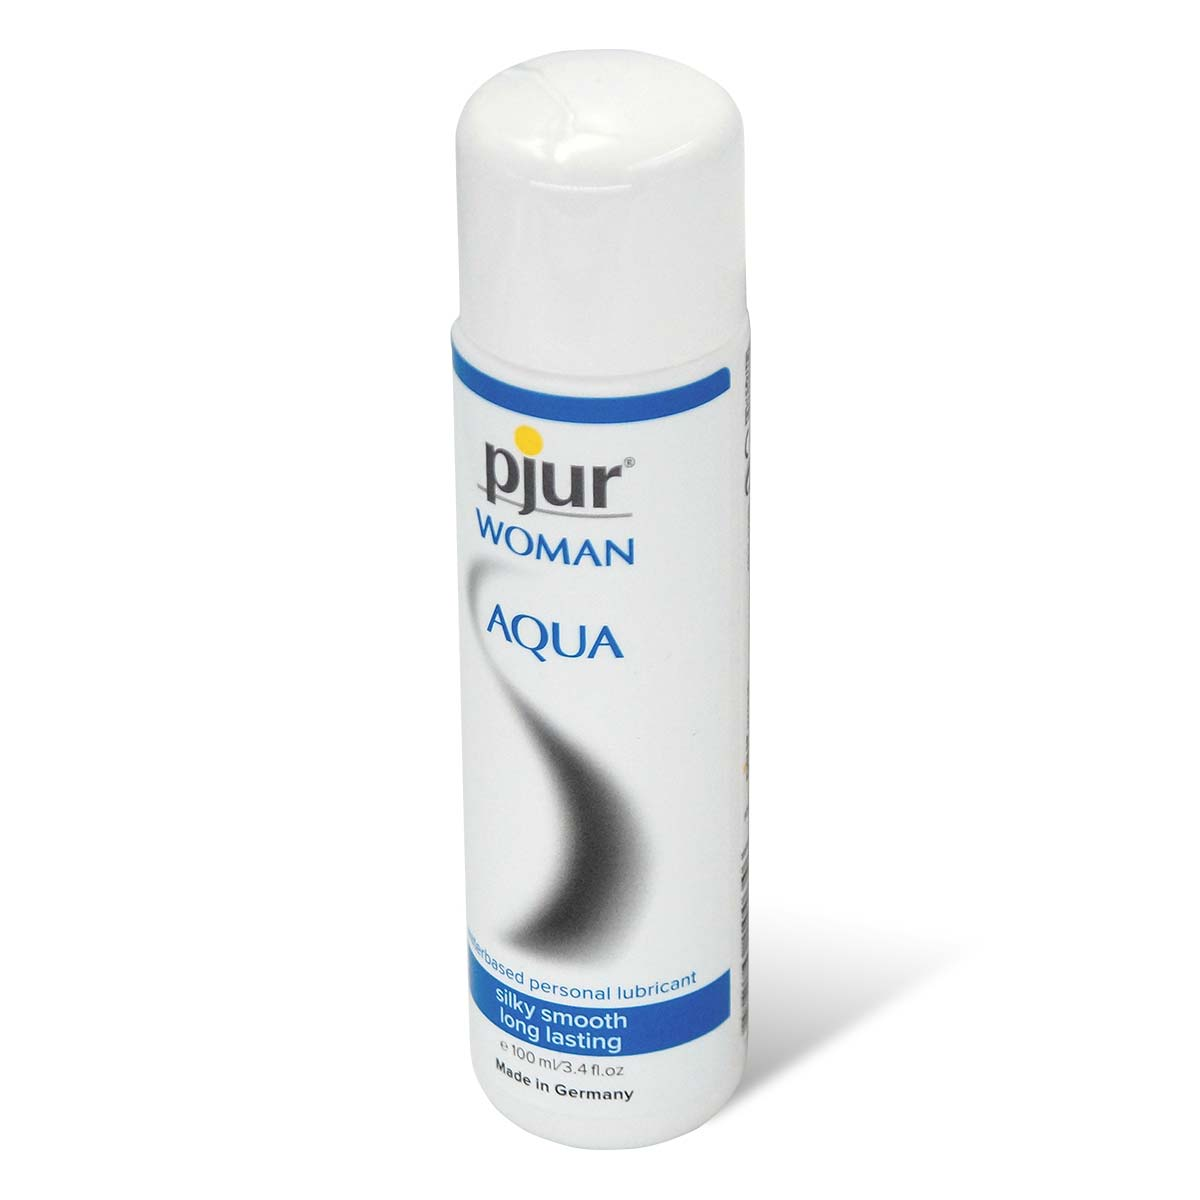 pjur Woman Aqua 100ml Water-based Lubricant